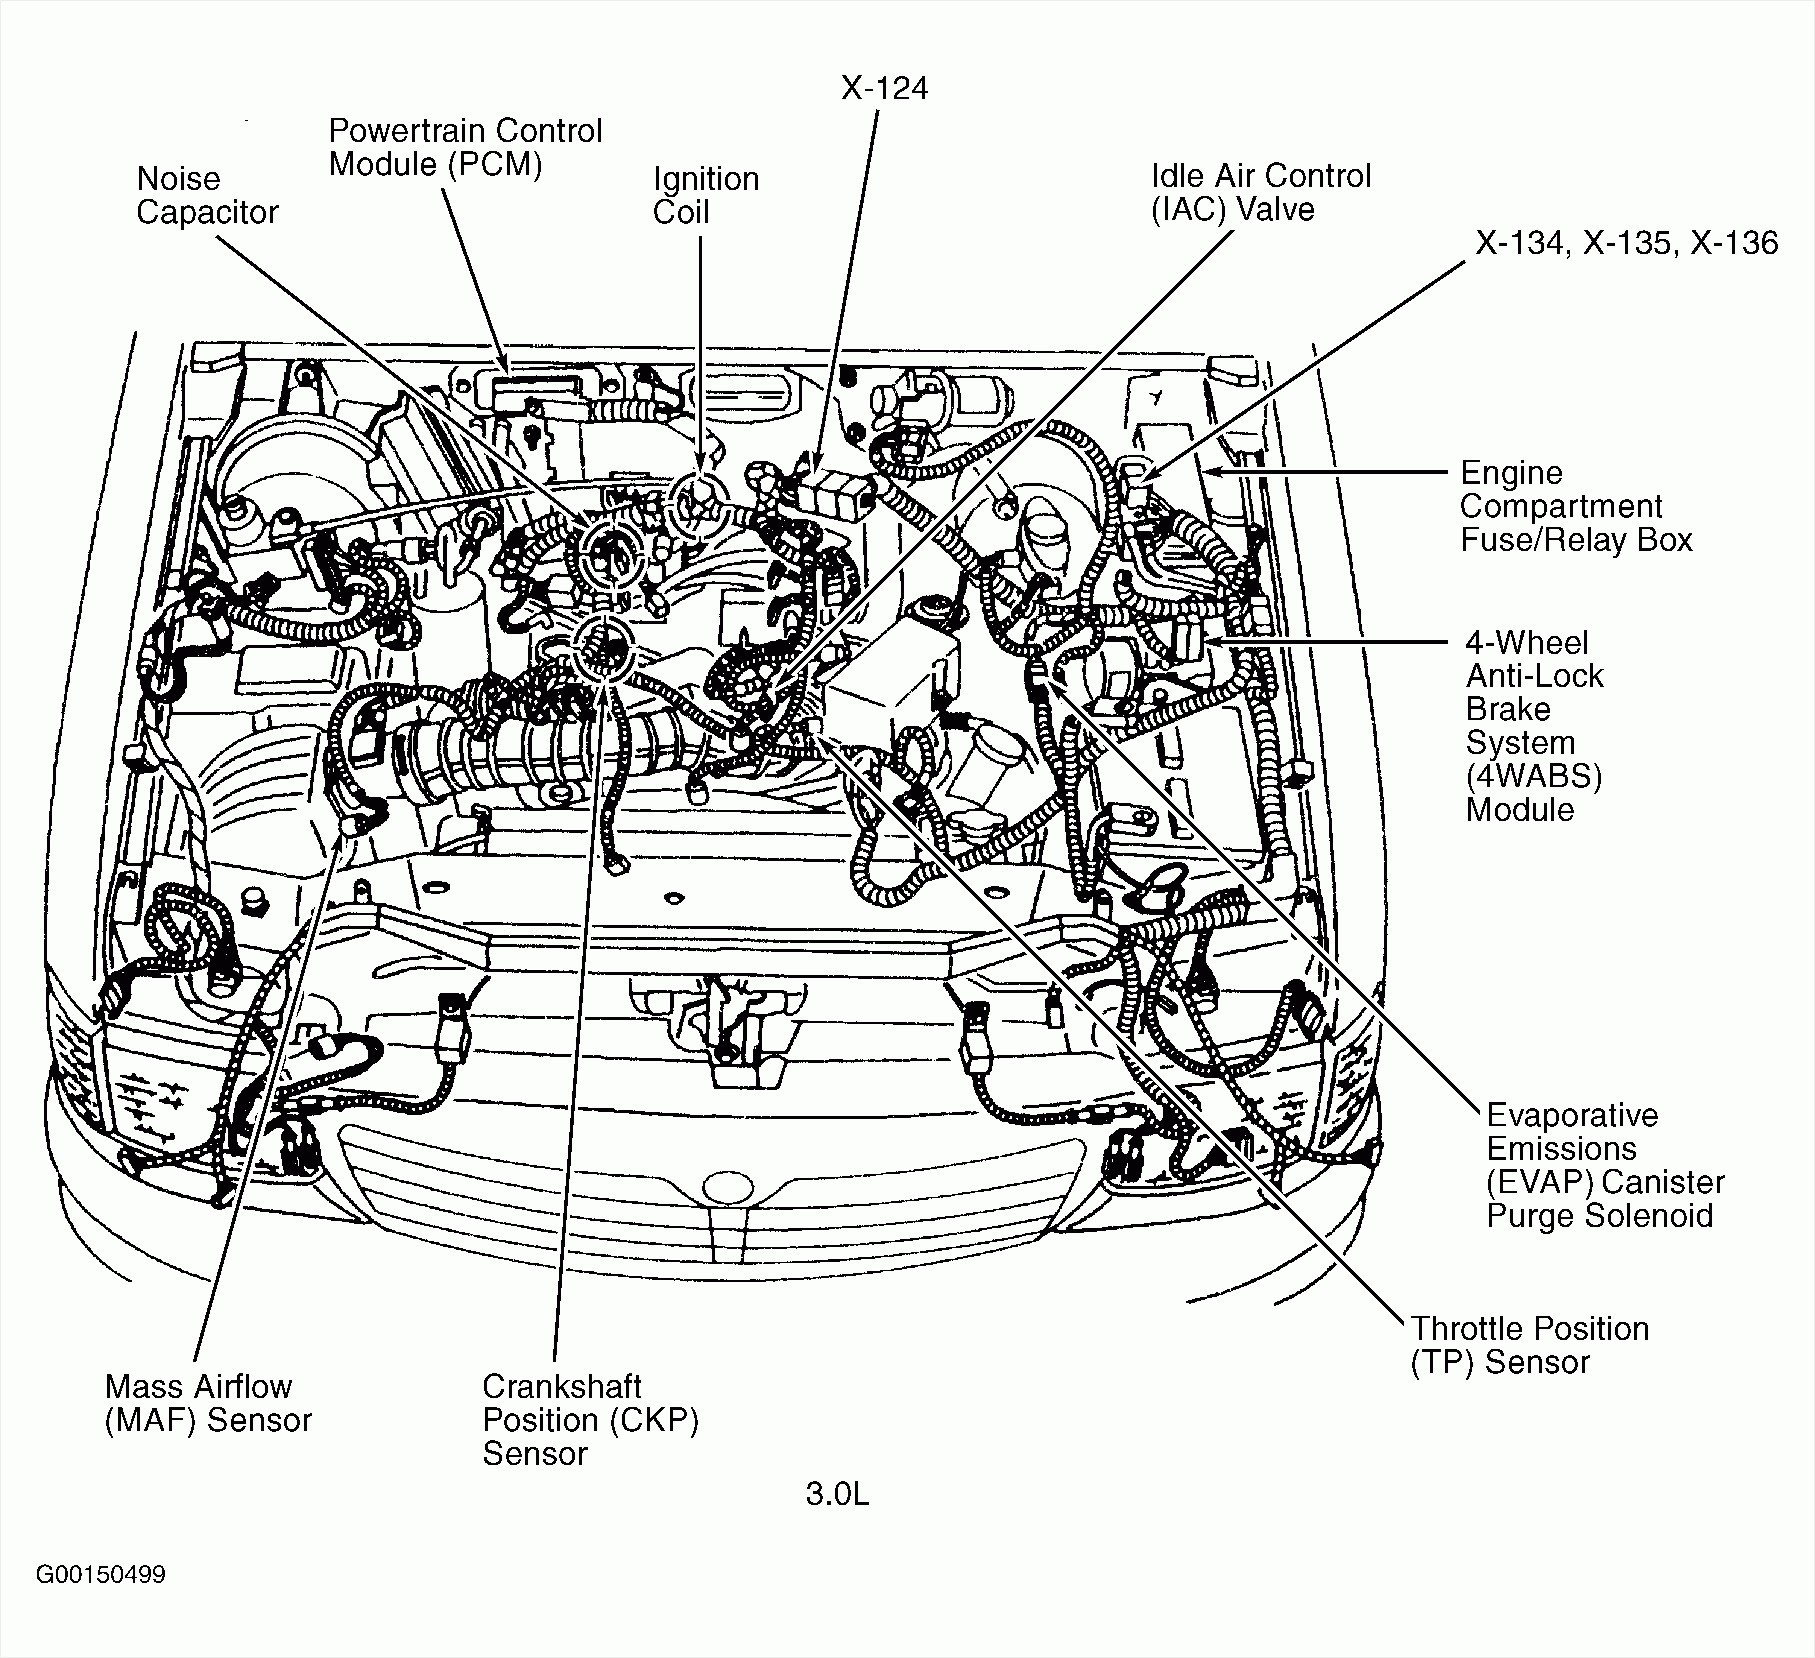 2004 Kia Sedona Engine Diagram Wiring Diagrams for Mazda 3